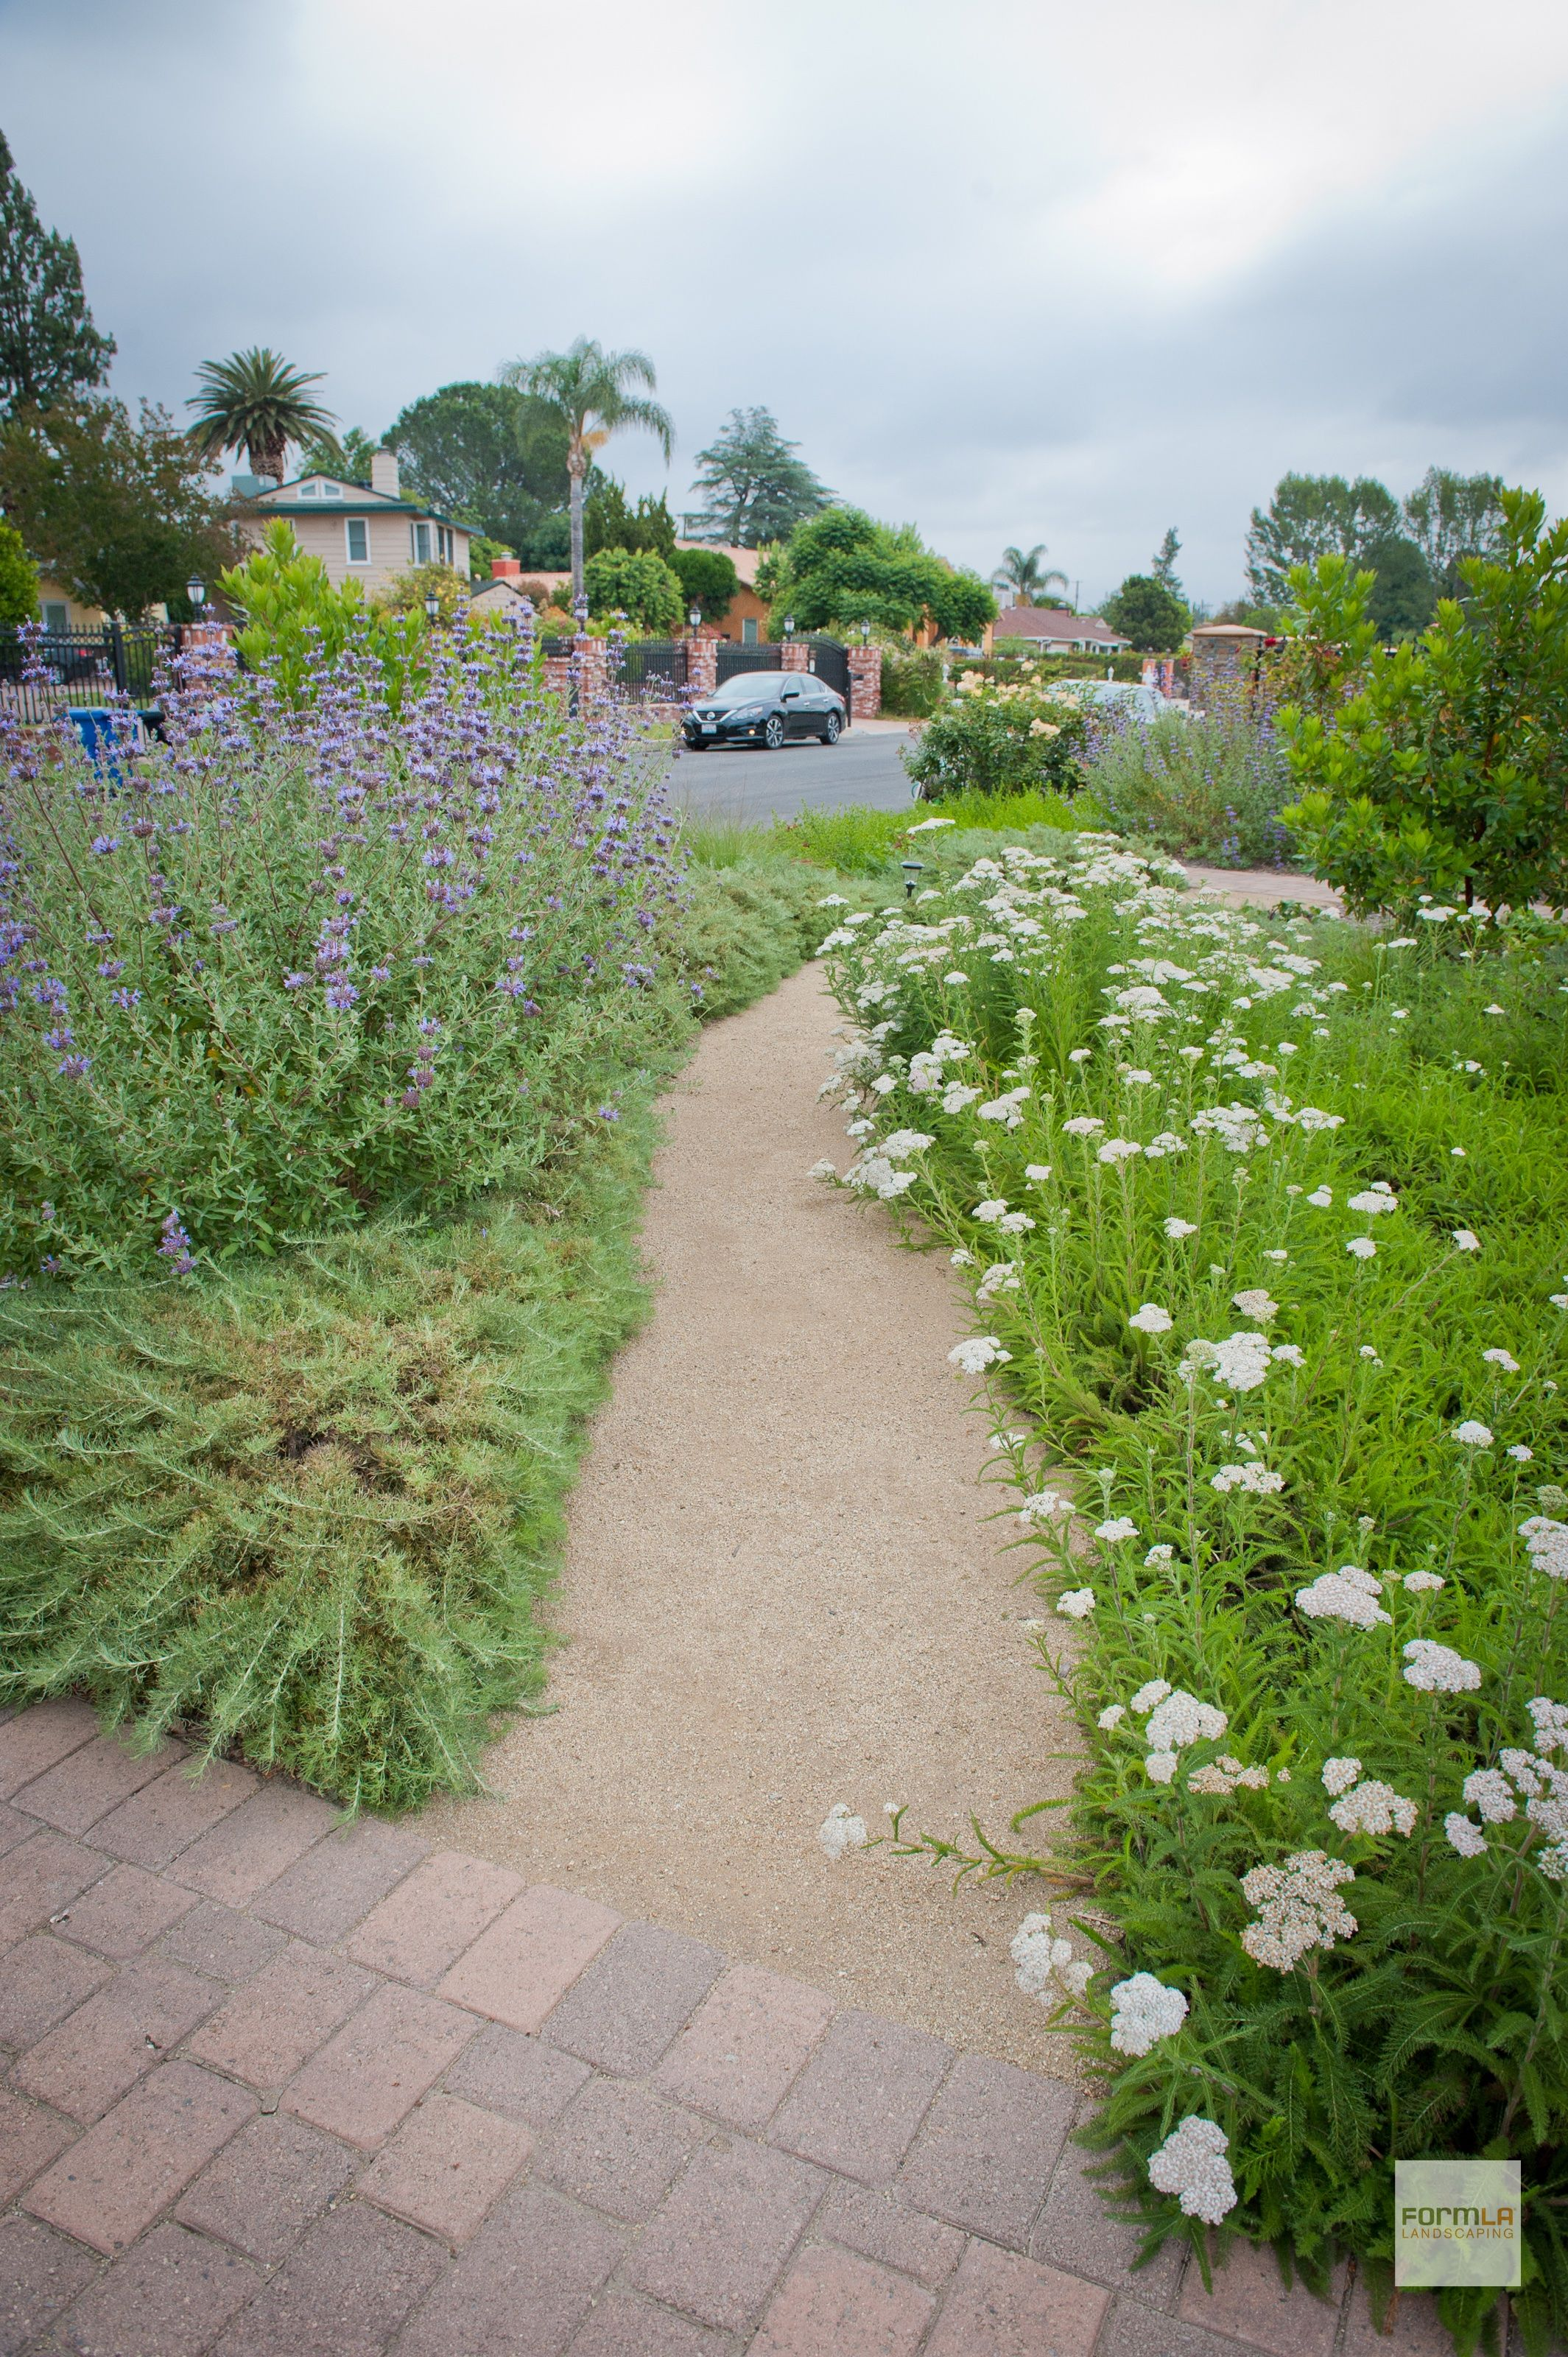 Native plant gardening image by FormLA Landscaping on NPGT ...